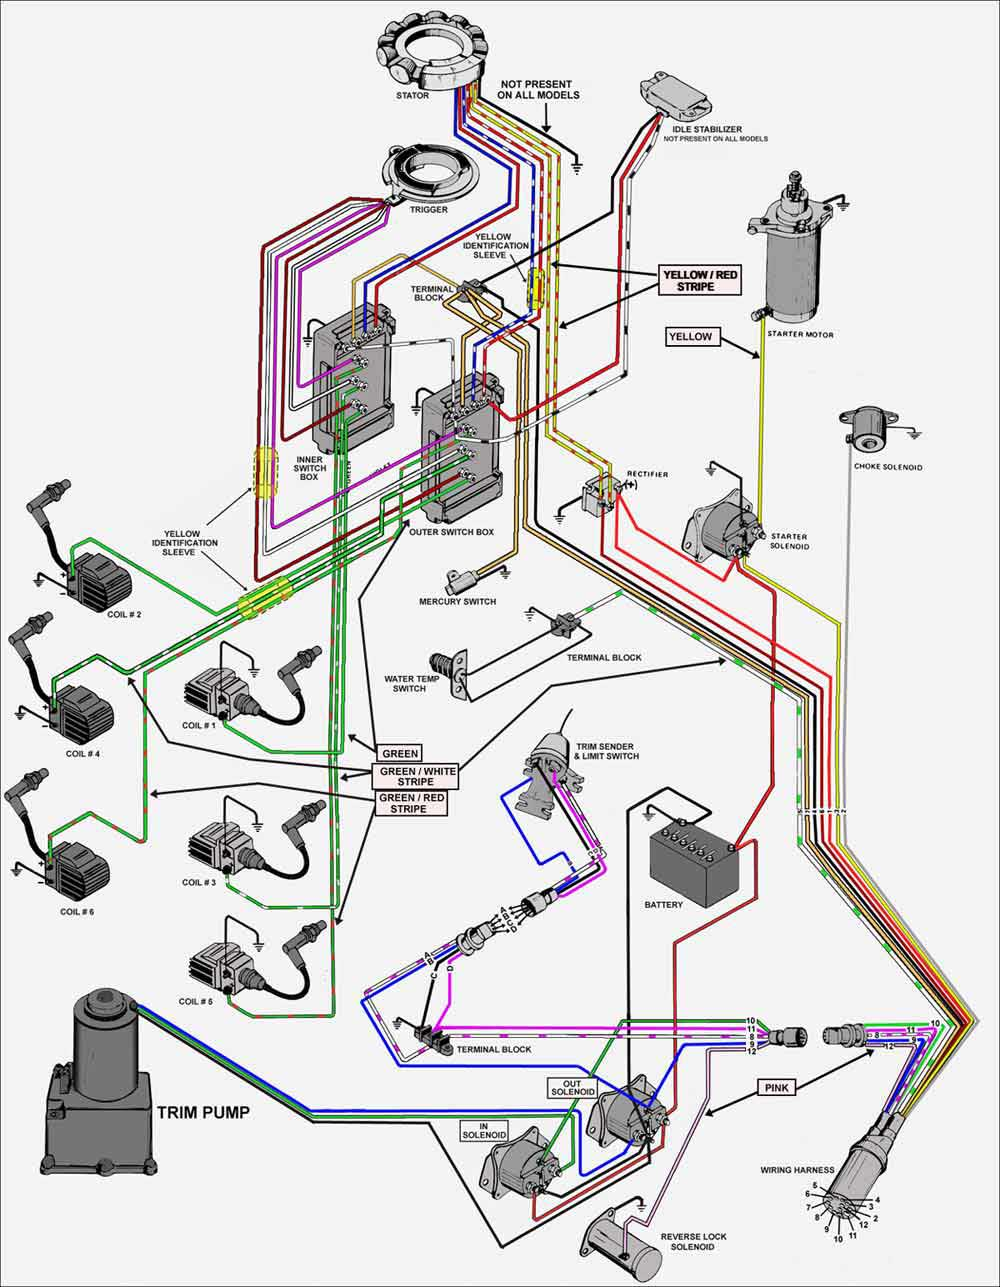 Mariner Outboard Trim Wiring Diagram - Wiring Diagrams Schematic on mercury white ignition switch wiring diagram, mercury key switch wiring diagram, mercury marine kill switch, mercury outboard control wiring diagram, mercury marine ignition switch connector,